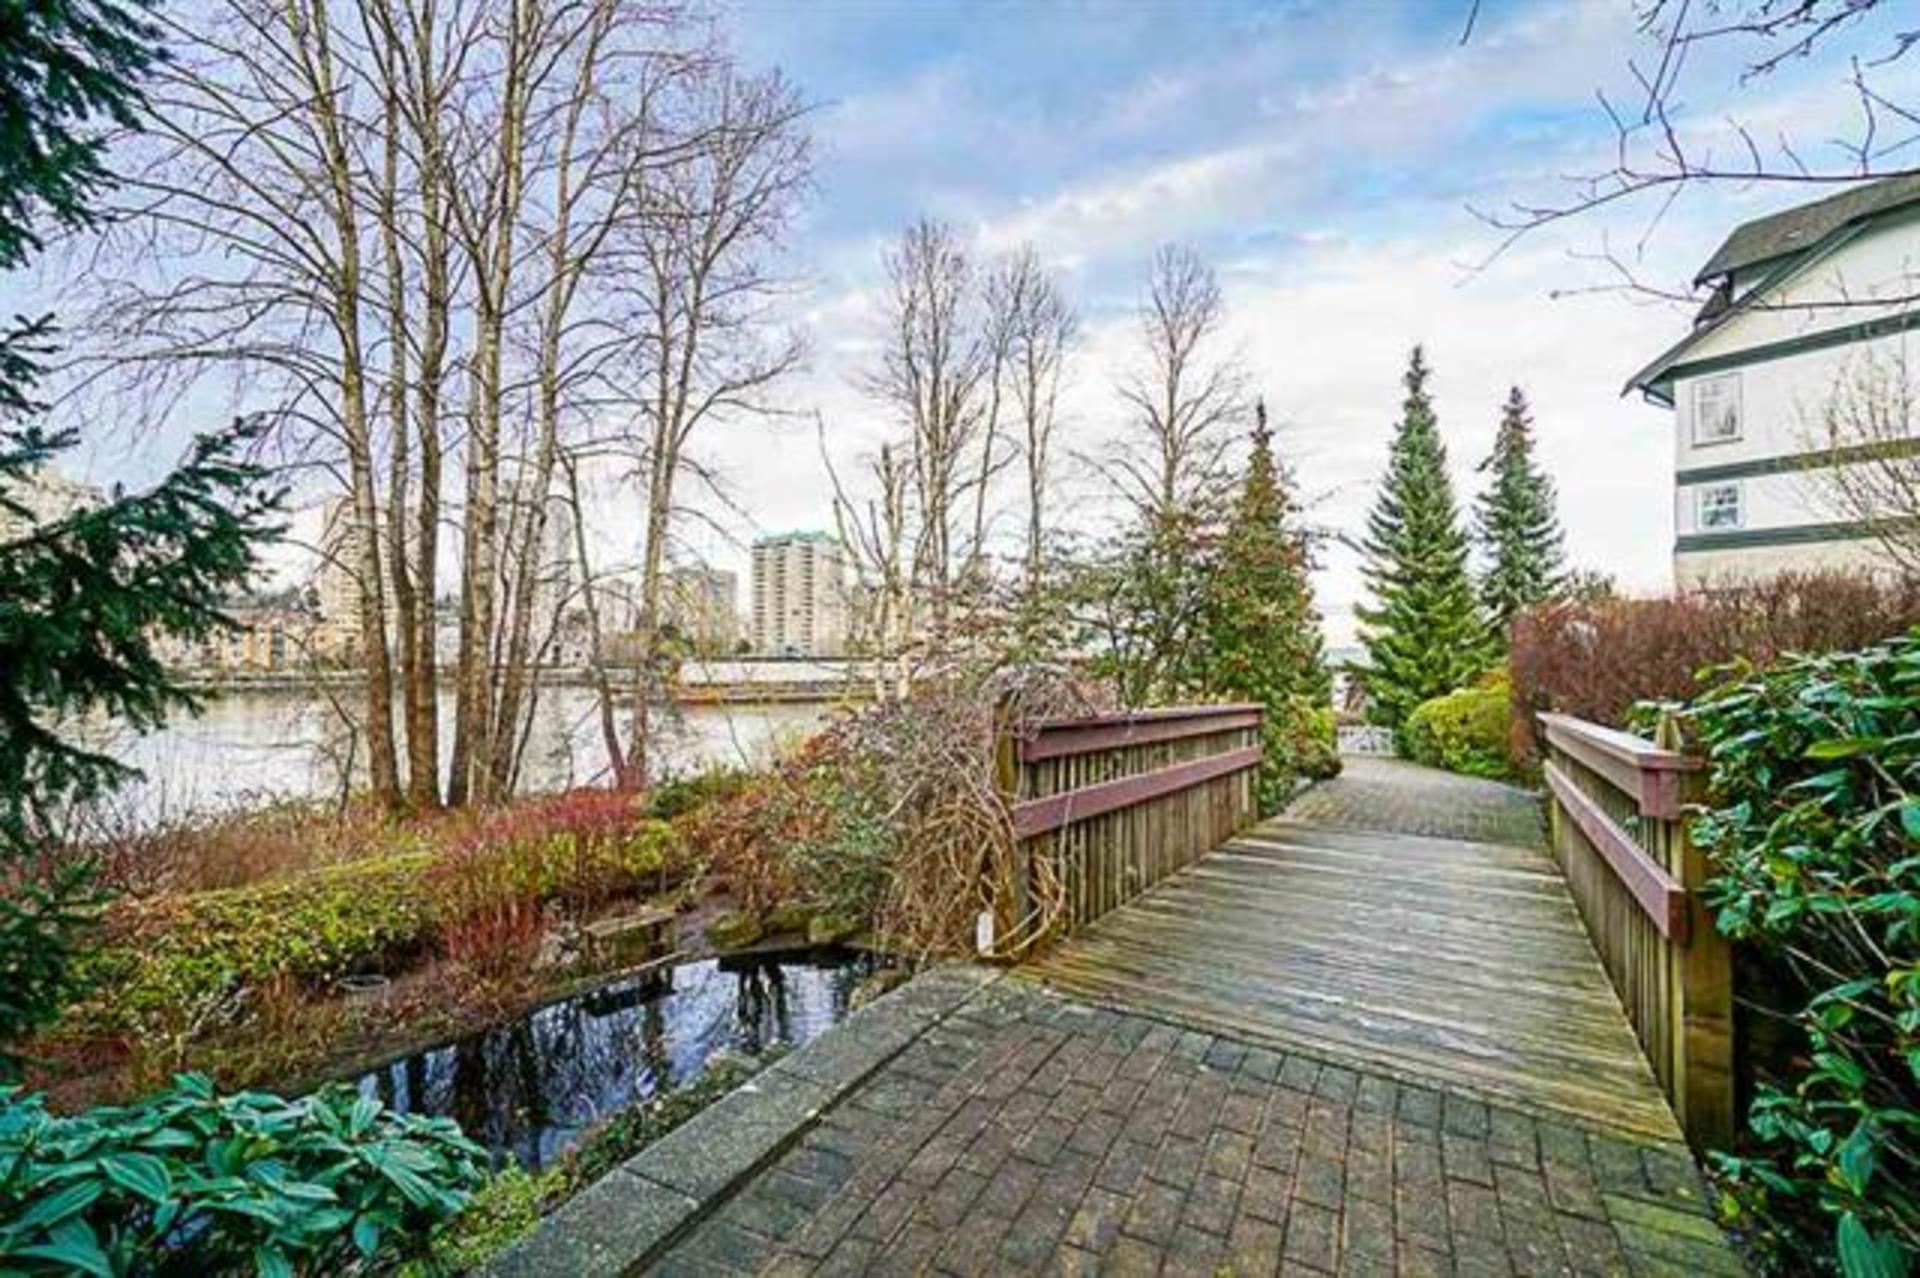 262354030-2 at 205 - 83 Star Crescent, Queensborough, New Westminster